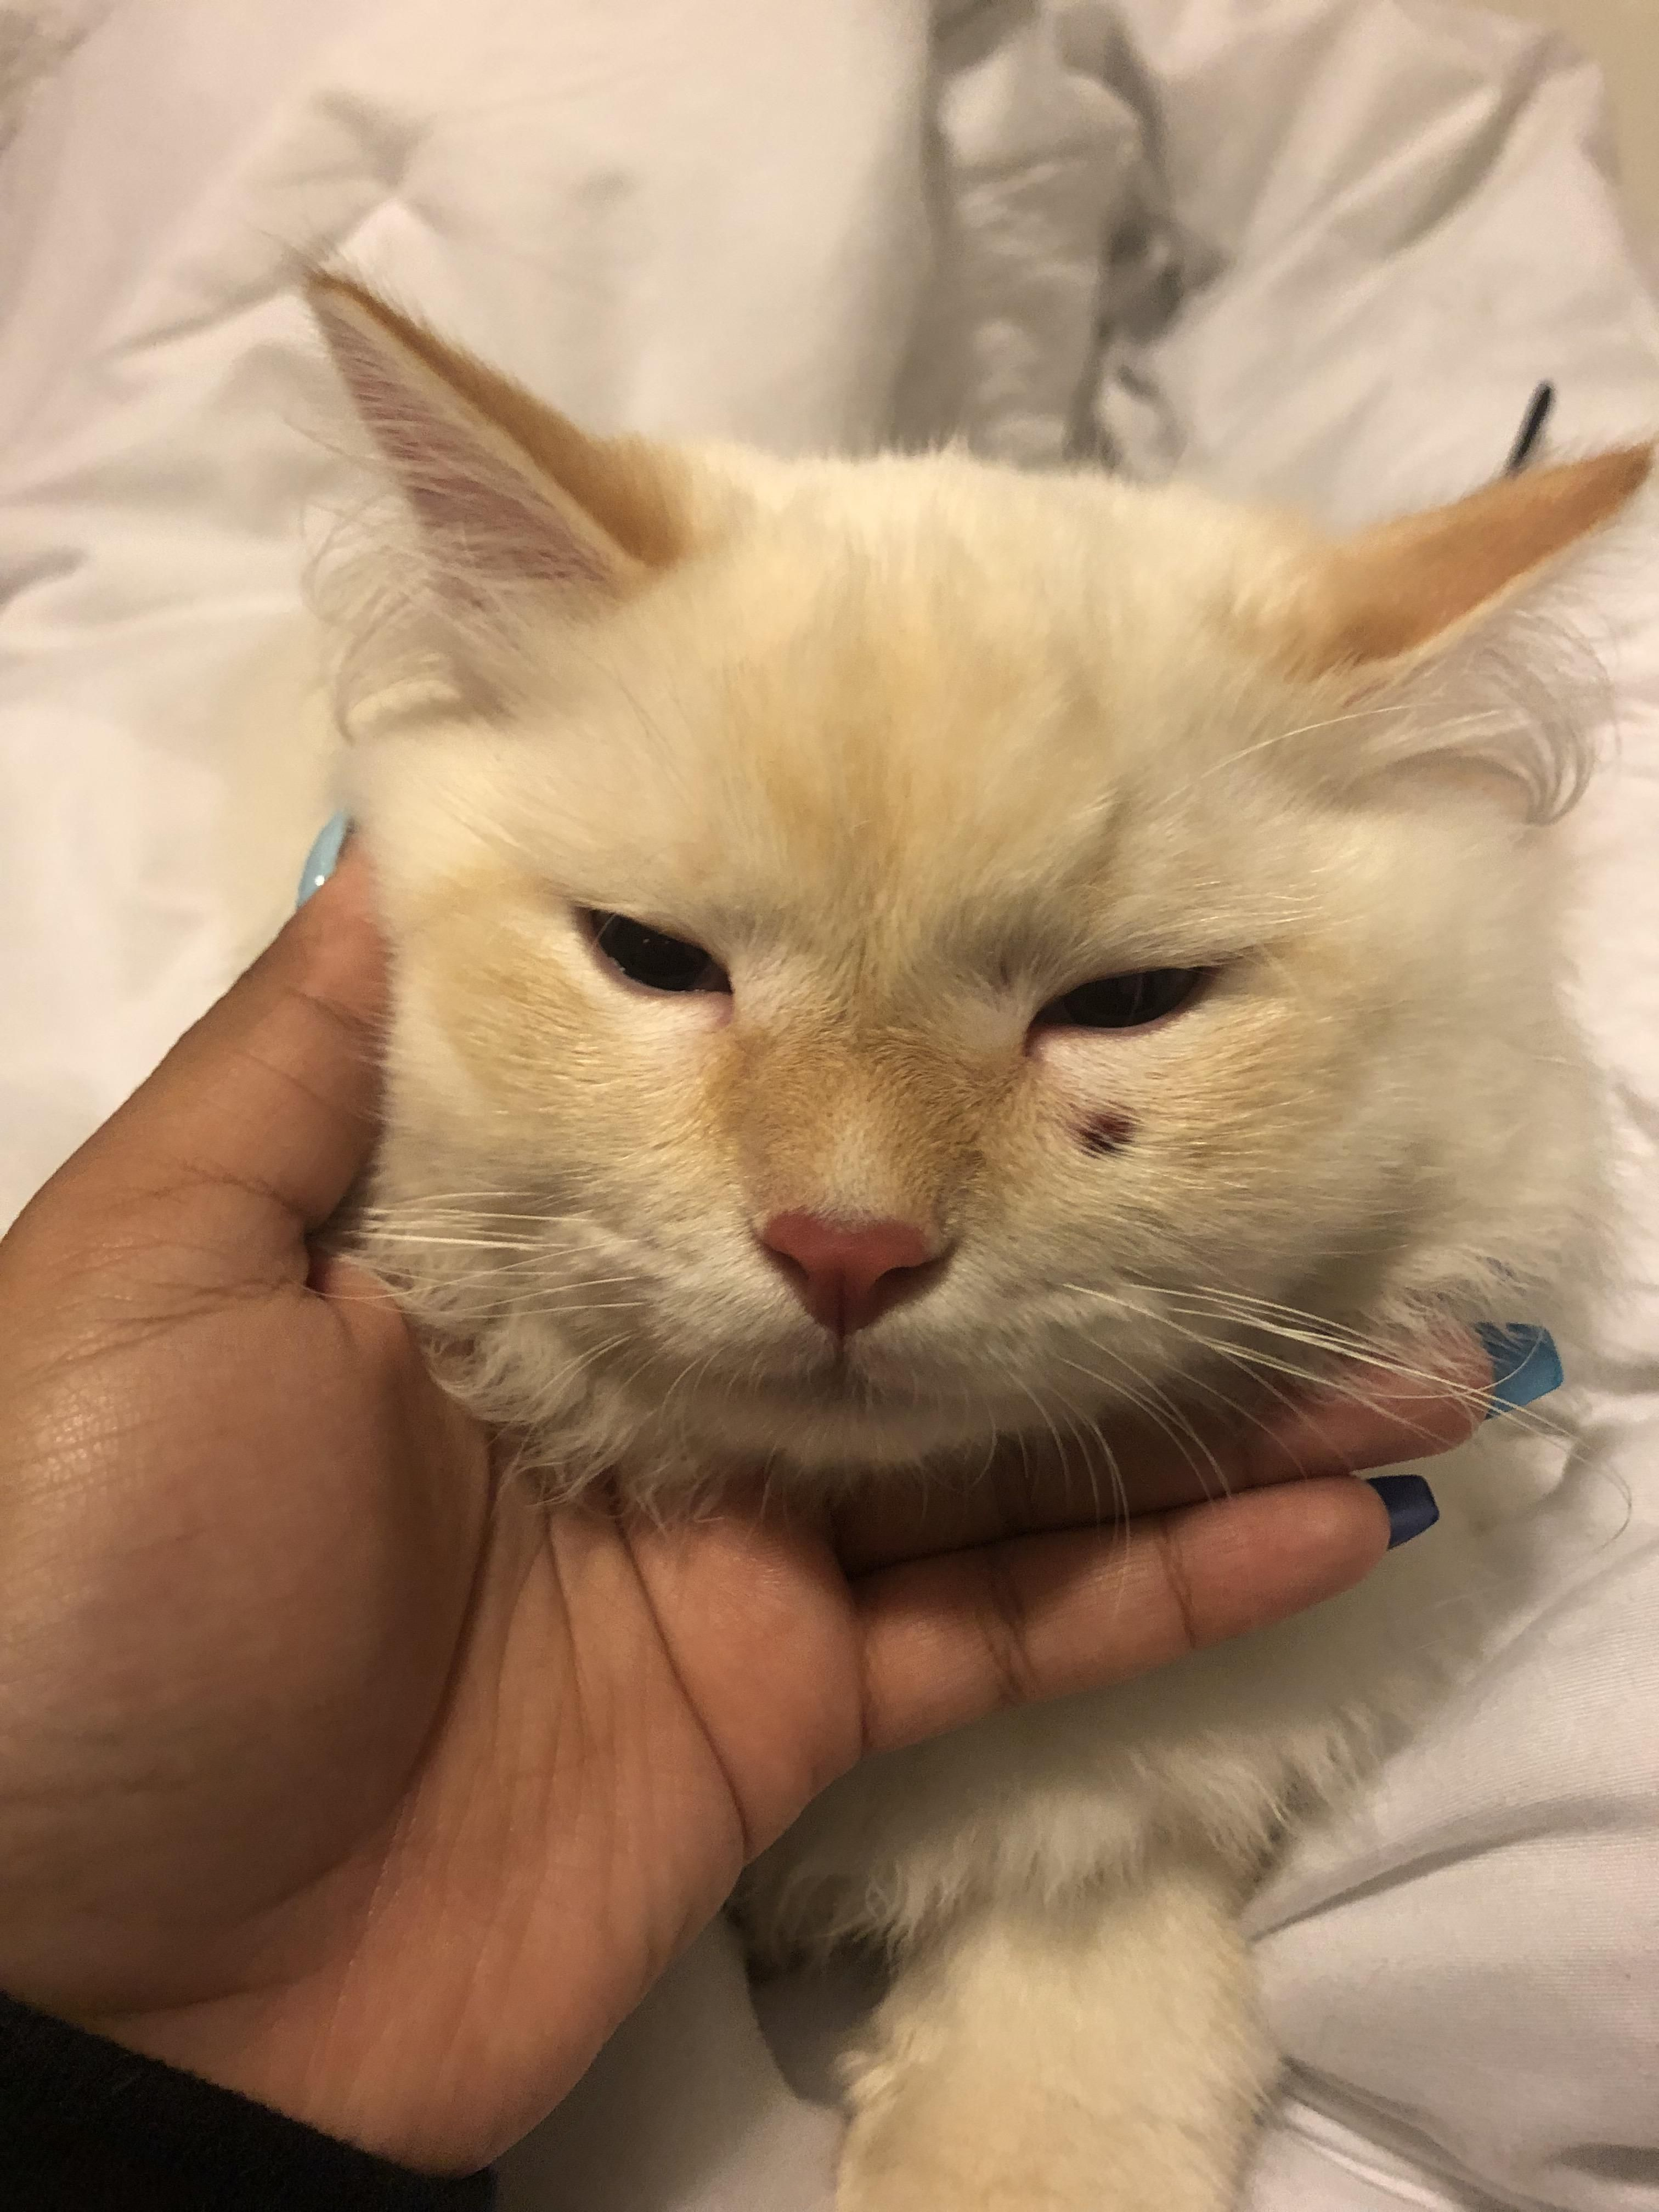 My Cat Got Hurt After Getting Neutered The Vet Claims He Injured Himself After Being Woken From Sedation Should I Believe Him Cats Kitten Pets